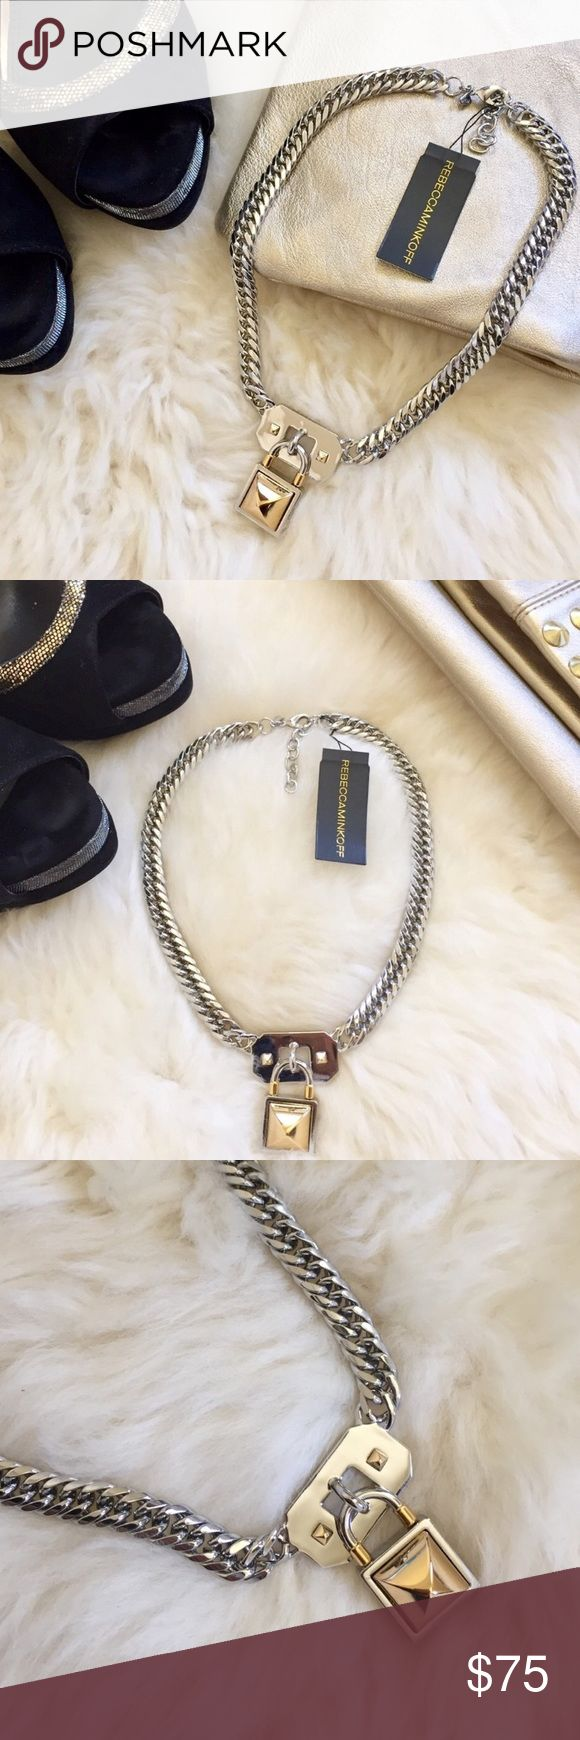 """Rebecca Minkoff Pyramid Lock Charm Chain Necklace New with tags- Silver tone curb chain necklace with two tone Pyramid stud accented Lock pendant and lobster clasp. Length 16"""" with 2"""" extension, Pendant length 1 3/8"""". Made of brass. Will come in jewelry pouch. Rebecca Minkoff Jewelry Necklaces"""